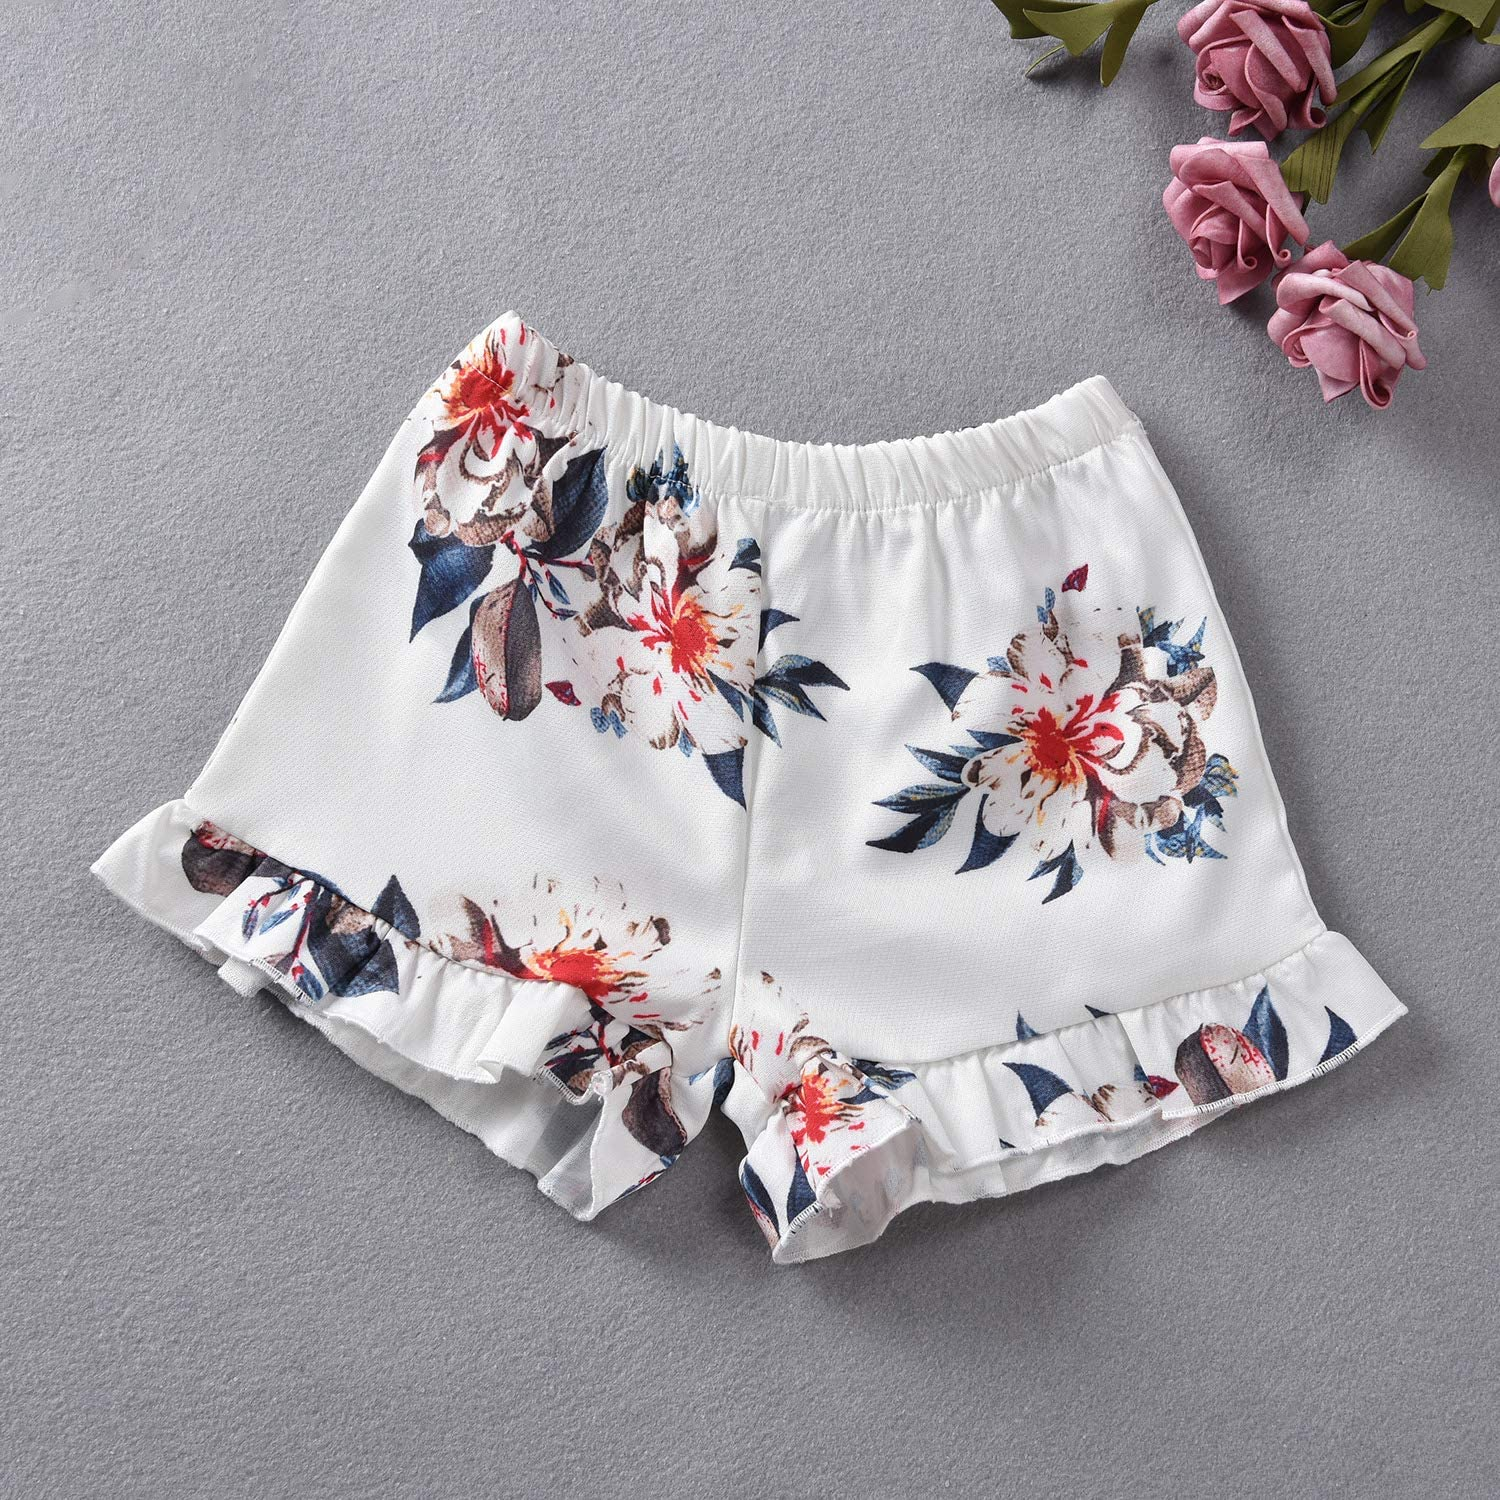 Toddler Baby Girl Floral Halter Ruffled Outfits Set Strap Crop Tops+Short Pants 2 PCS Clothes Set